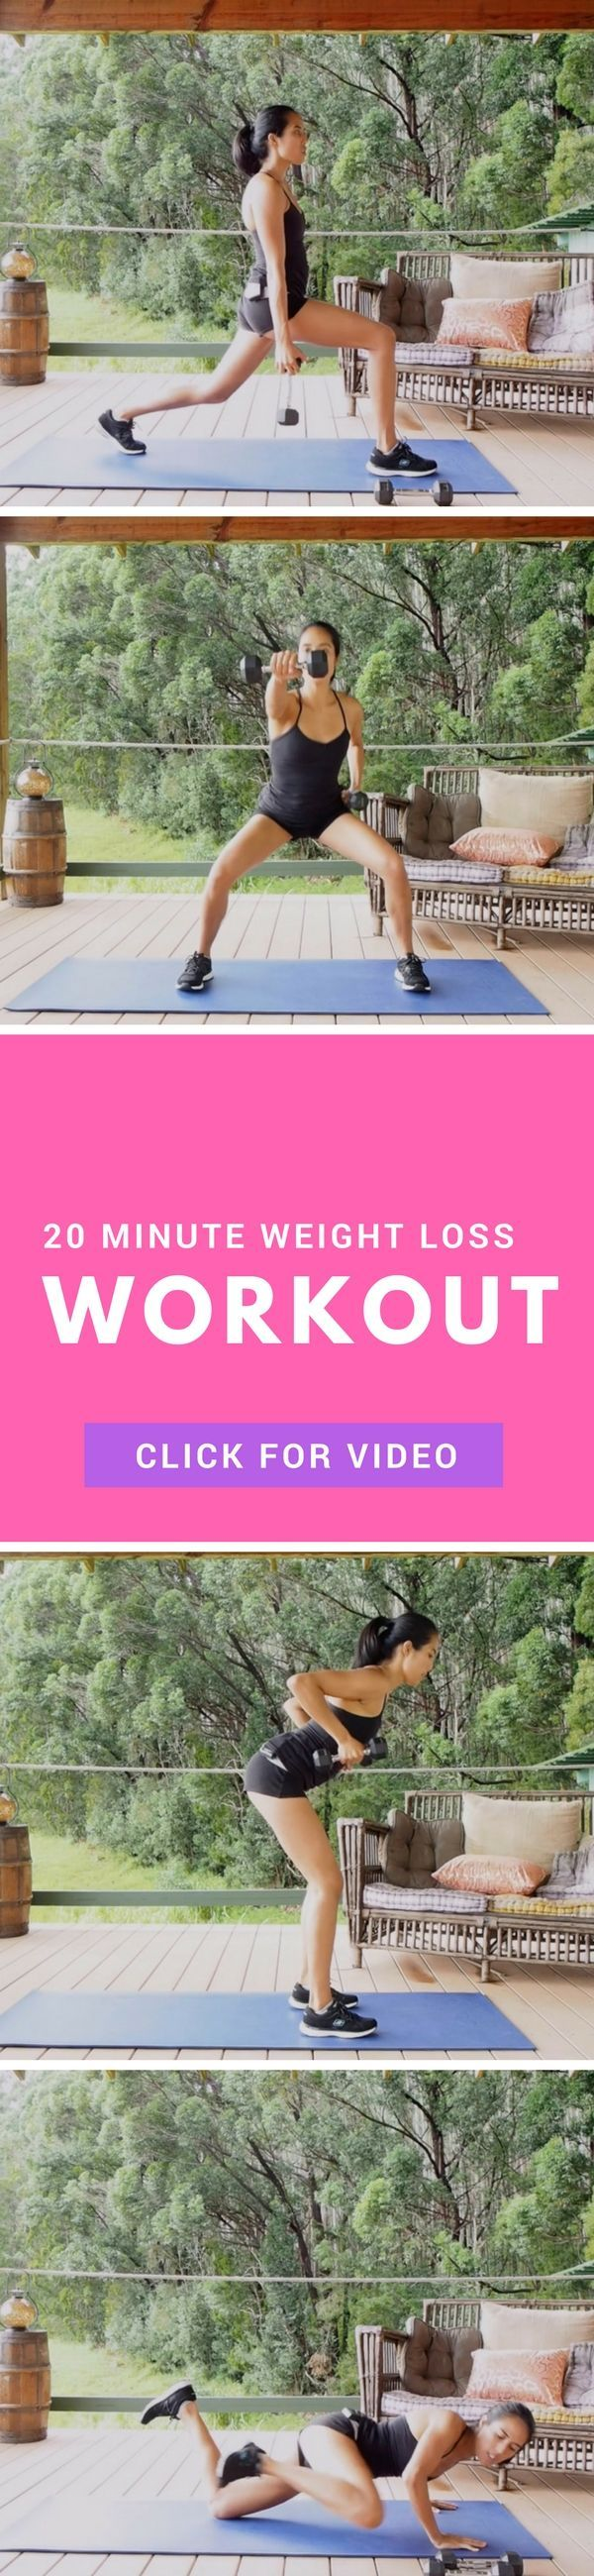 How to lose weight using stationary bike photo 6